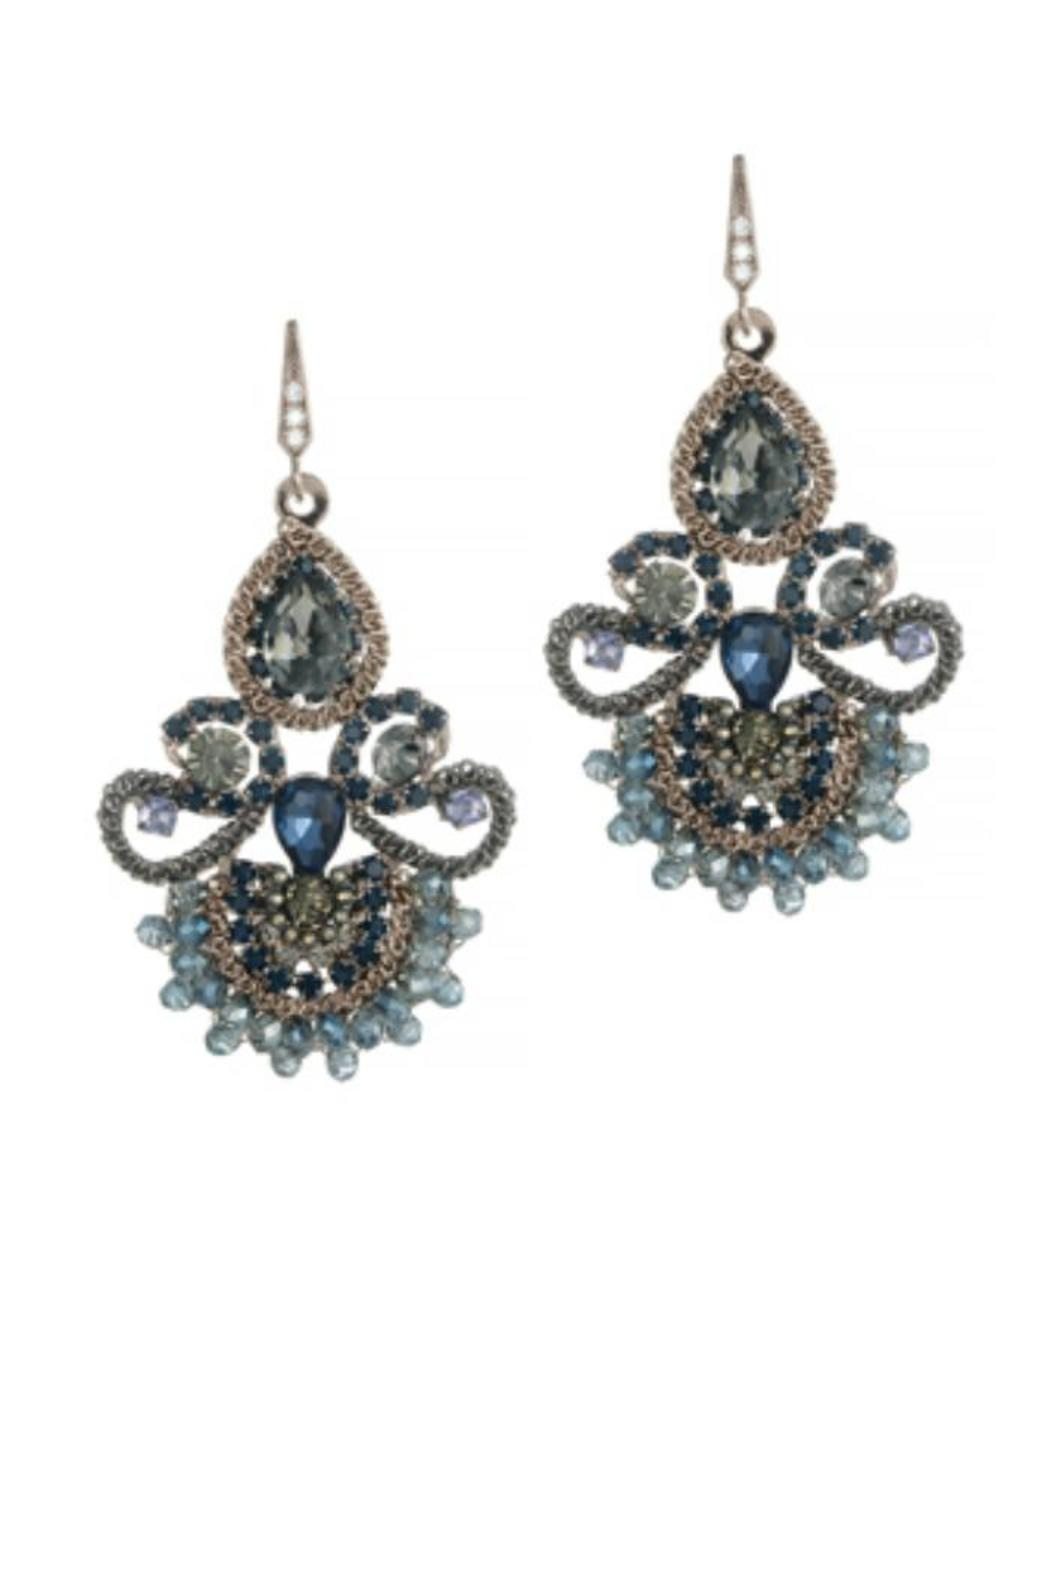 theia jewelry vintage blue earrings from dallas by gemma